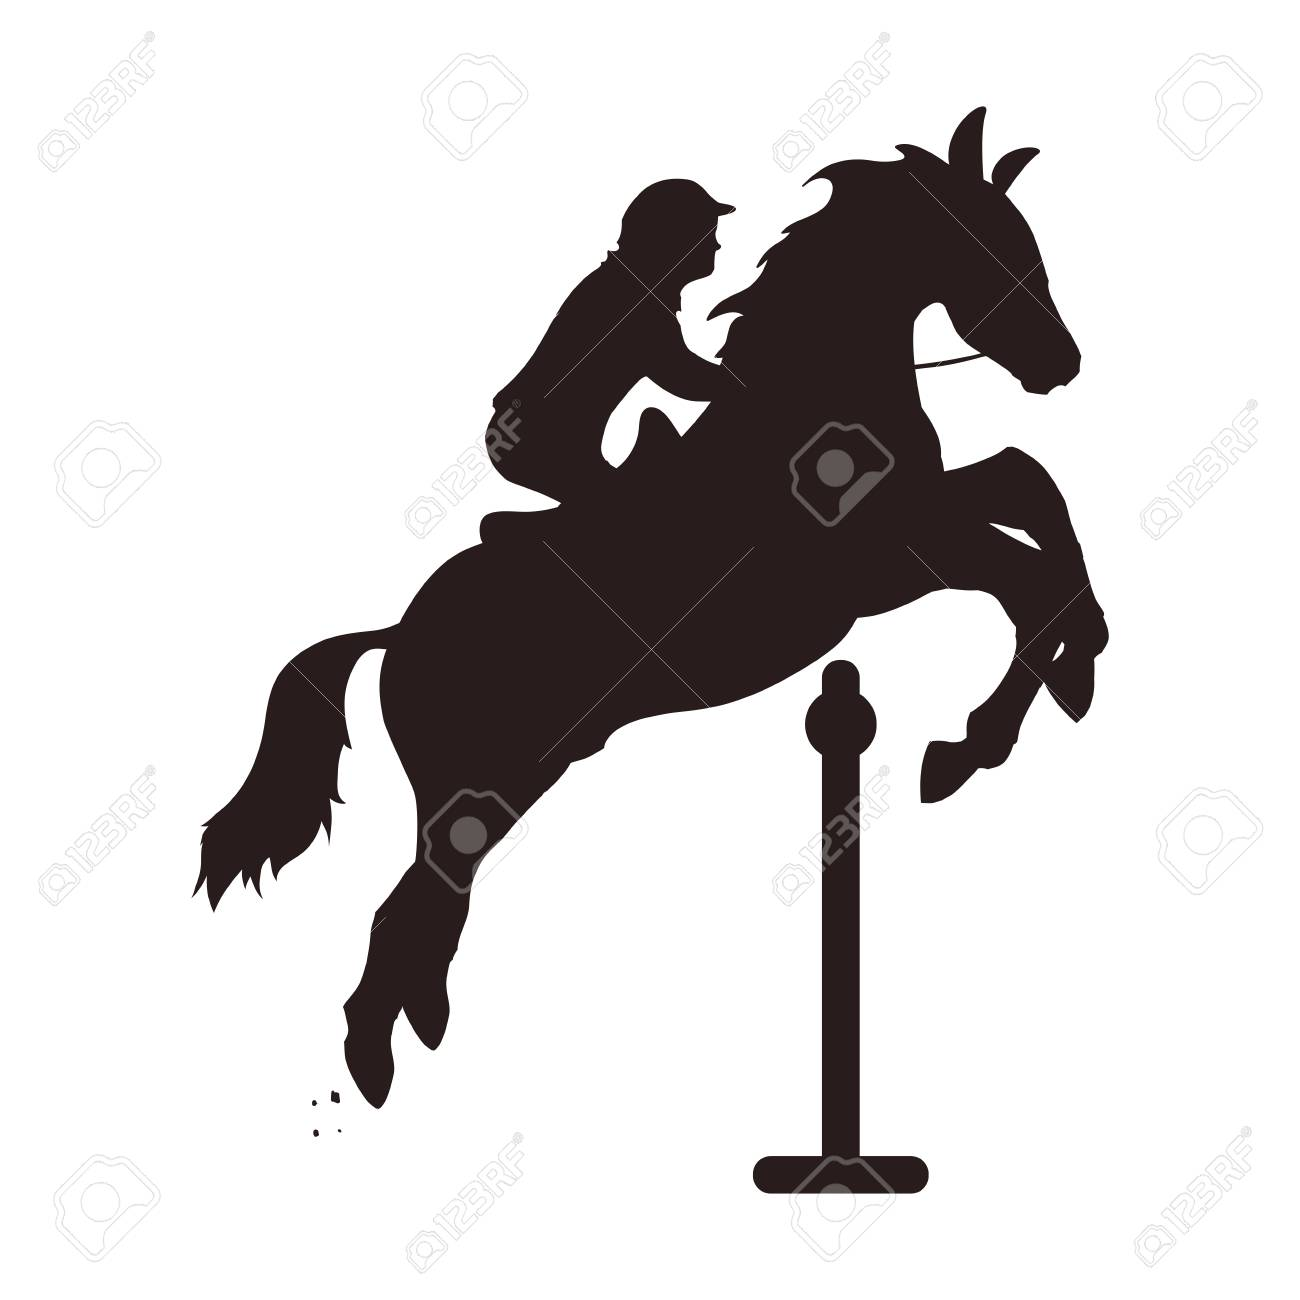 Horse Riding Equestrian Sport Icon Vector Illustration Graphic Royalty Free Cliparts Vectors And Stock Illustration Image 75240602